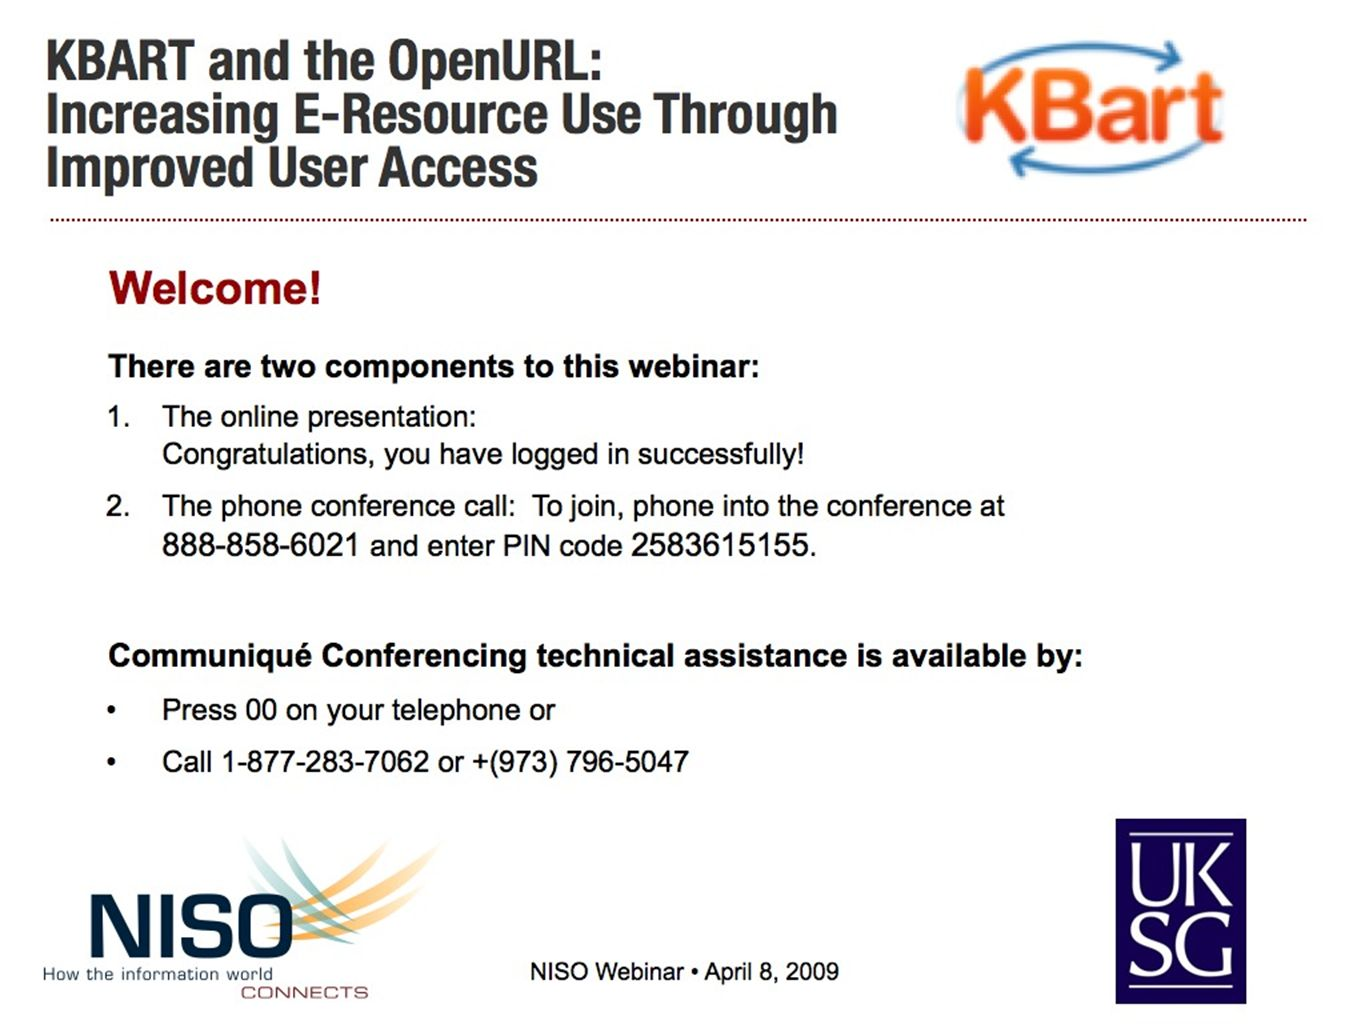 Welcome slide NISO/UKSG Webinar: KBART & the OpenURL How it works: Let the presentation run; you do not have to interact with your computer.